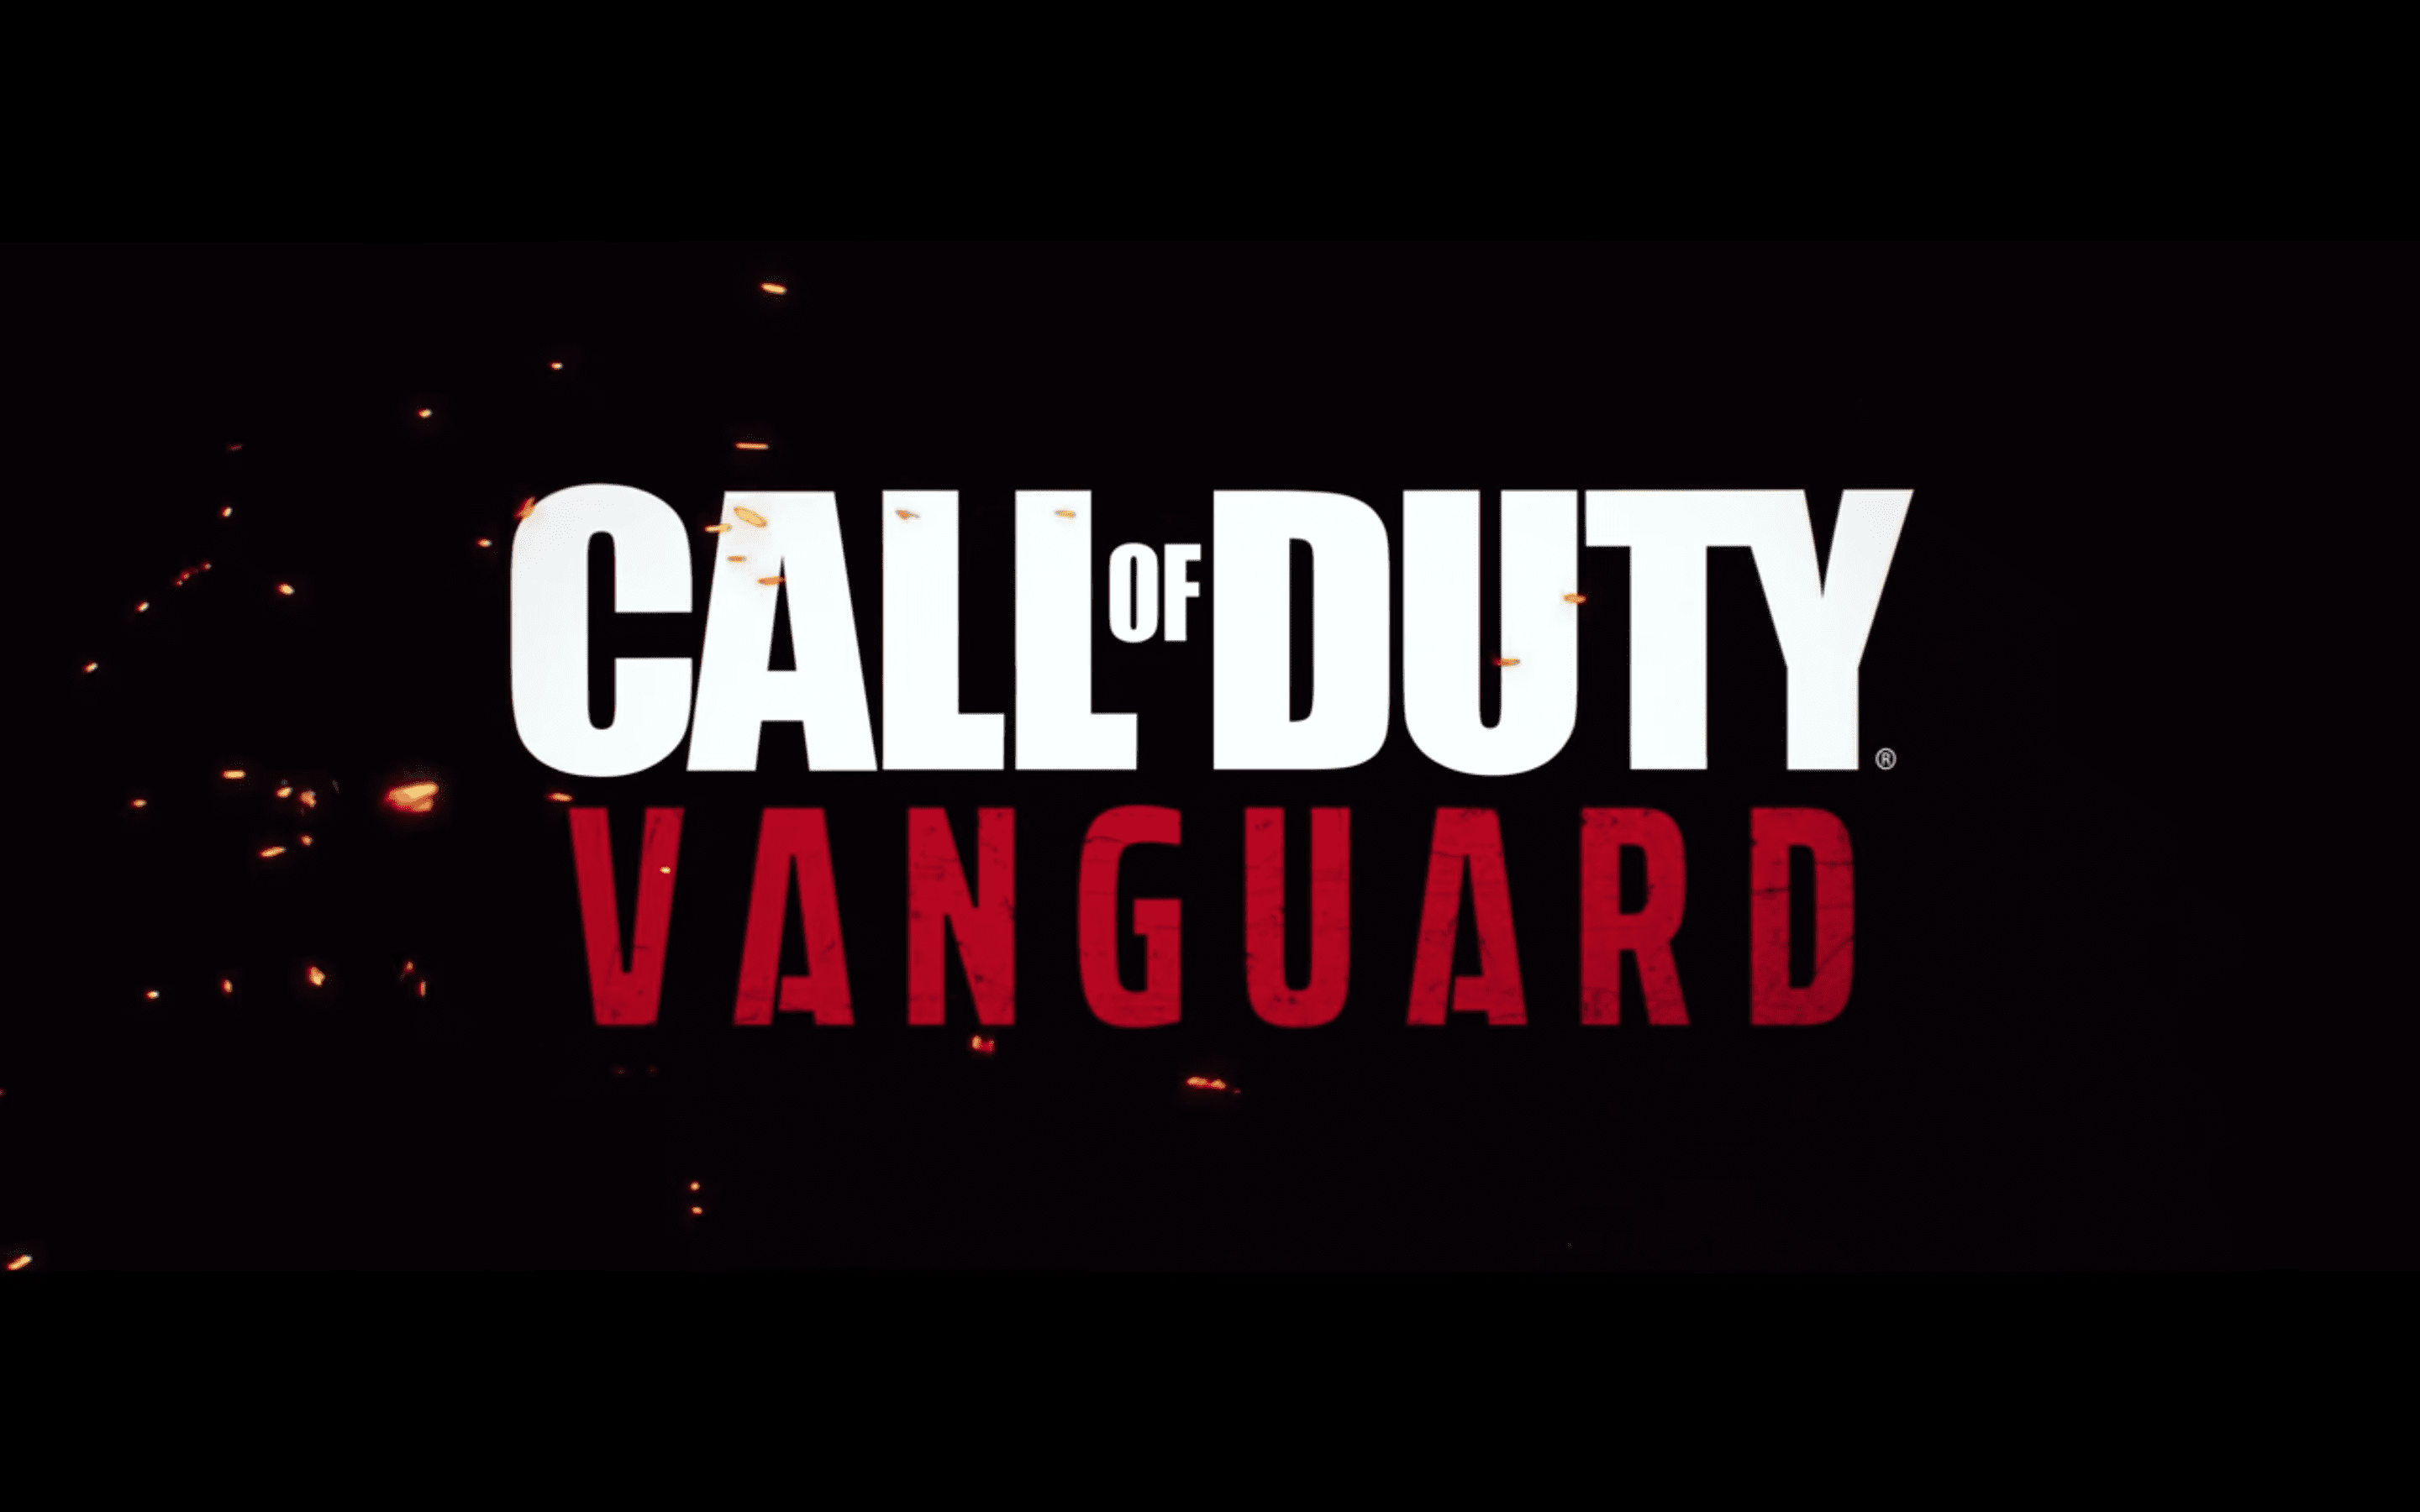 Call of Duty: Vanguard Release Date Confirmed For November 13, 2021.